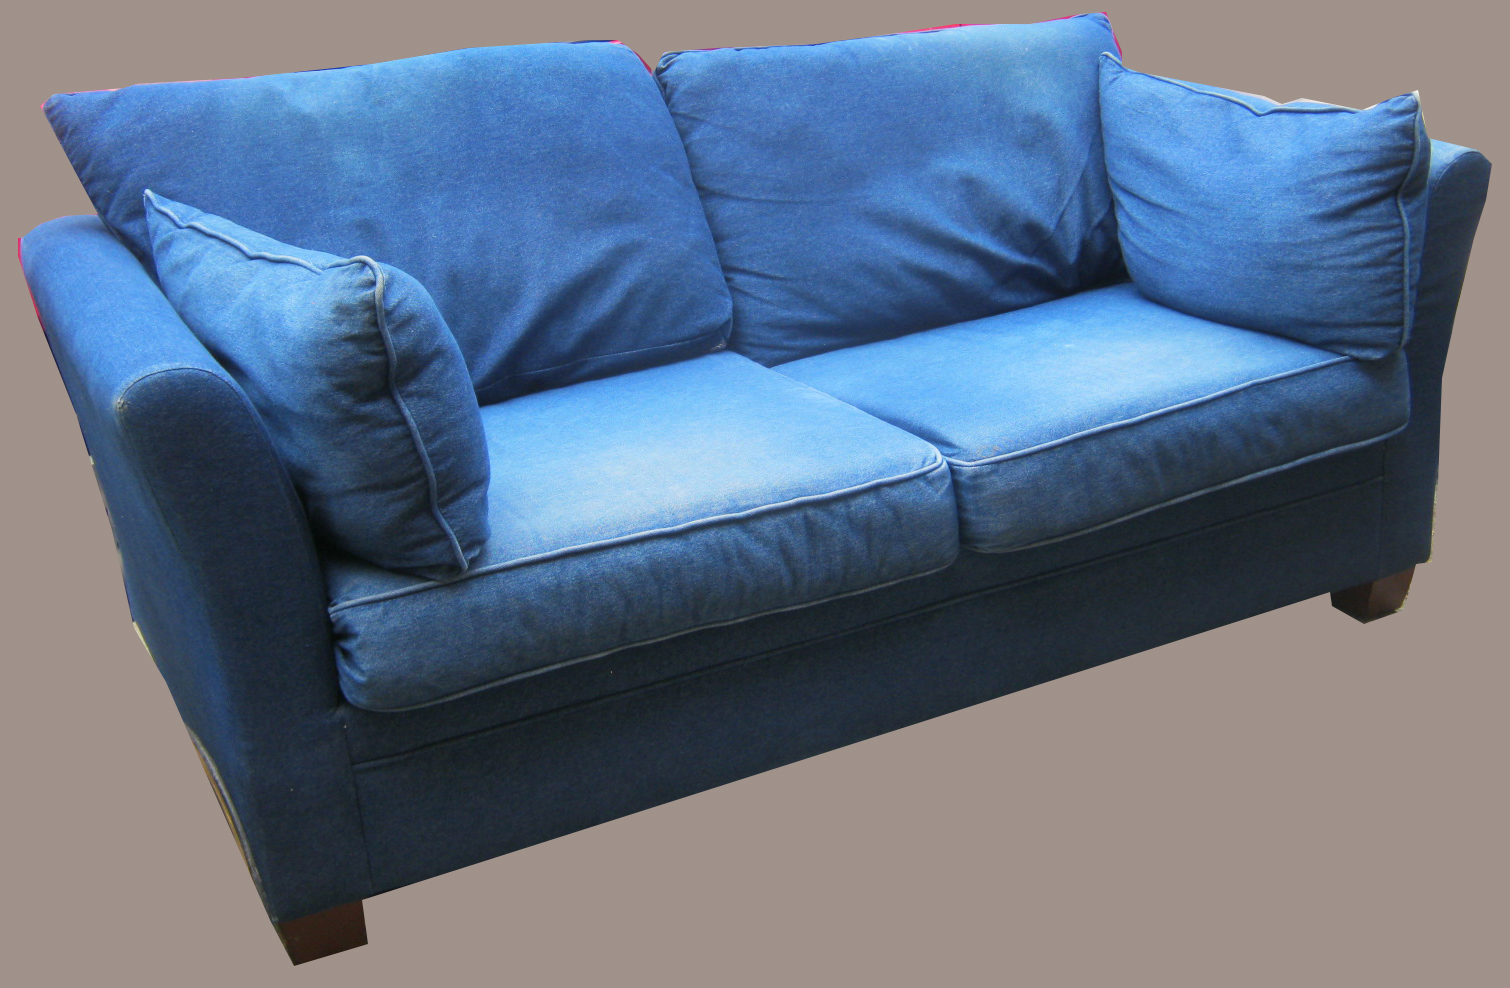 Uhuru furniture collectibles denim sofa sold Denim couch and loveseat